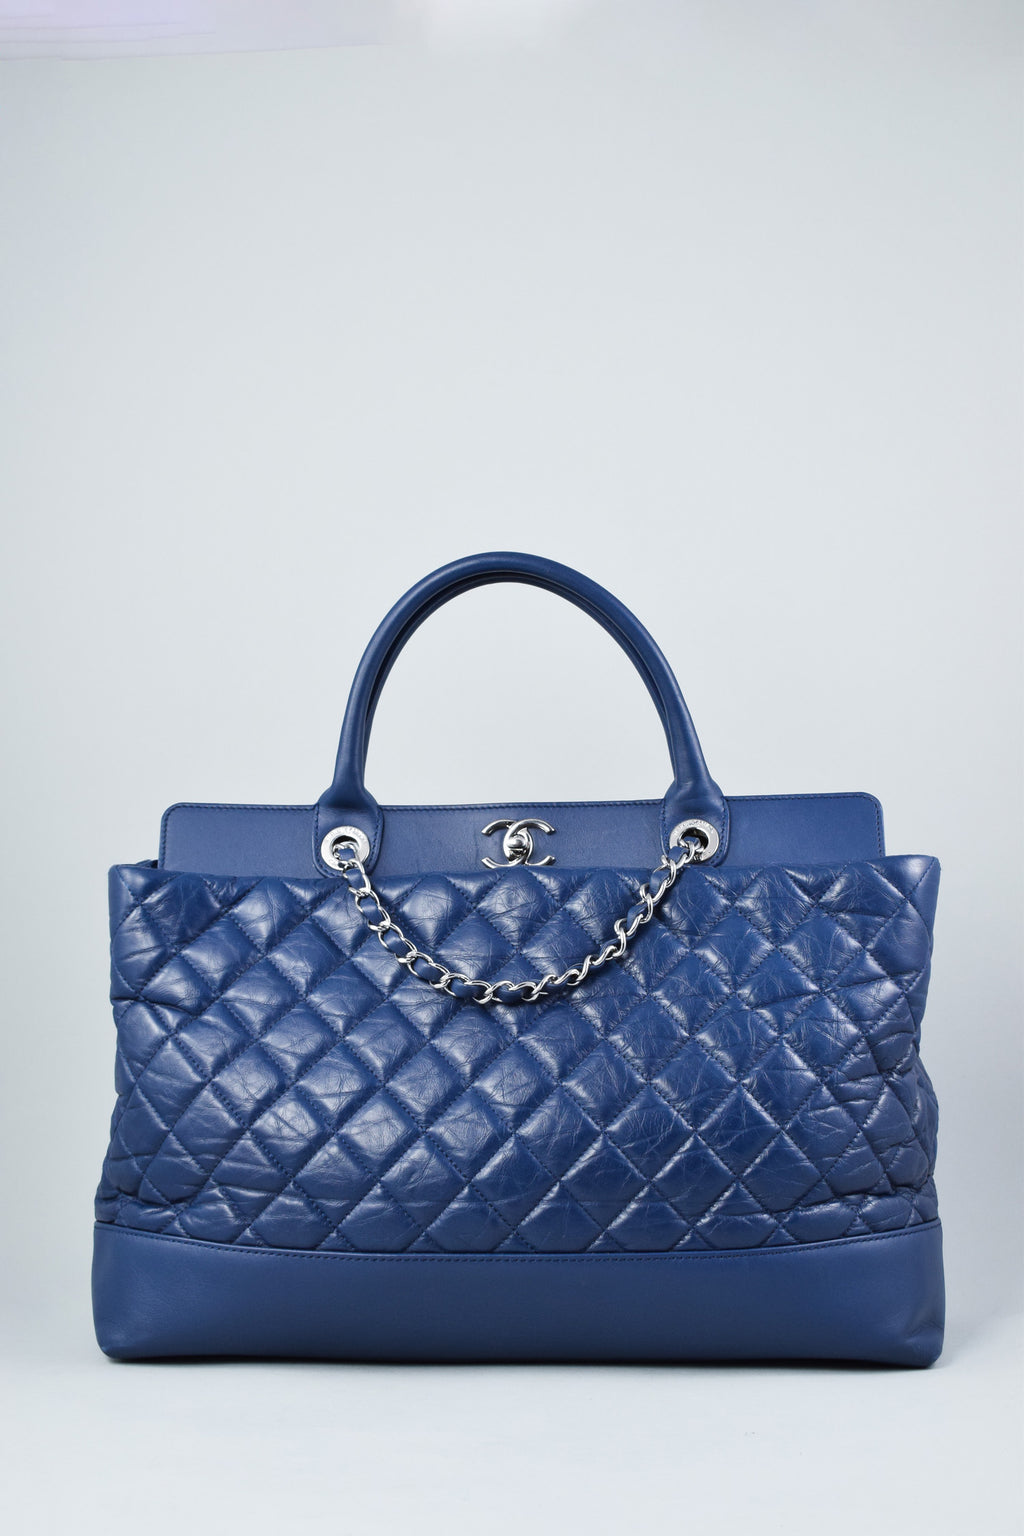 Chanel Navy Quilted Tote Bag